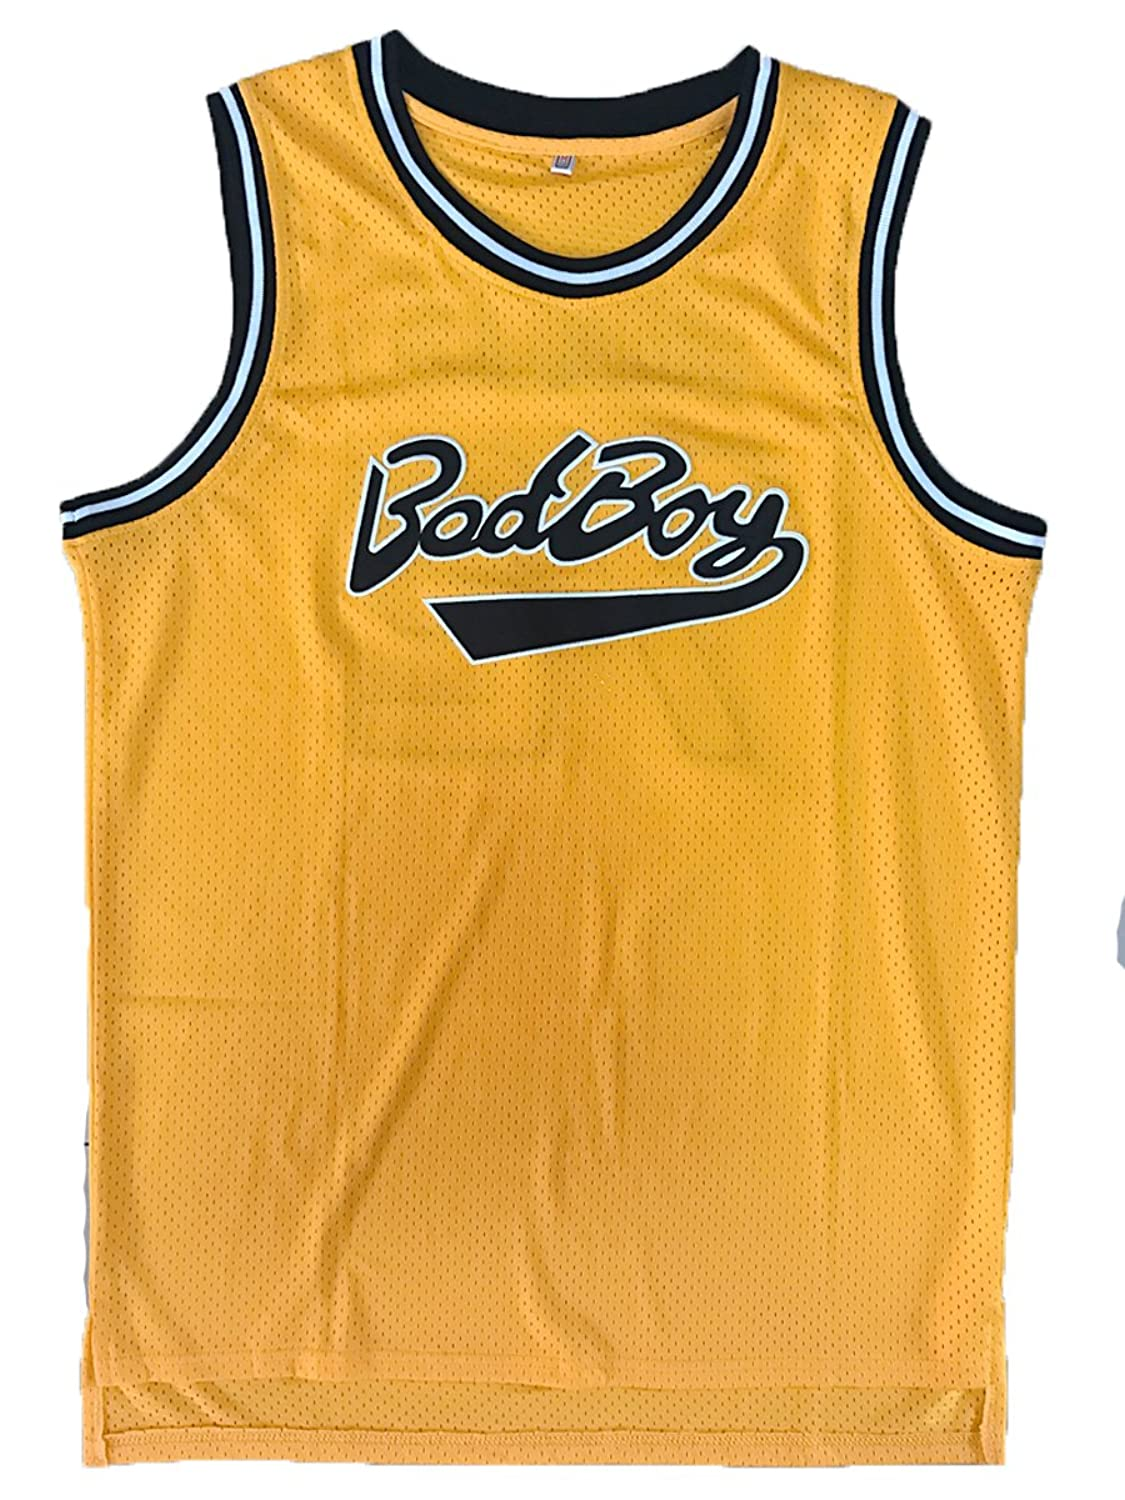 Amazon.com: Biggie Smalls #72 Bad Boy Basketball Jersey Notorious B.I.G. Juicy Video Costume: Clothing